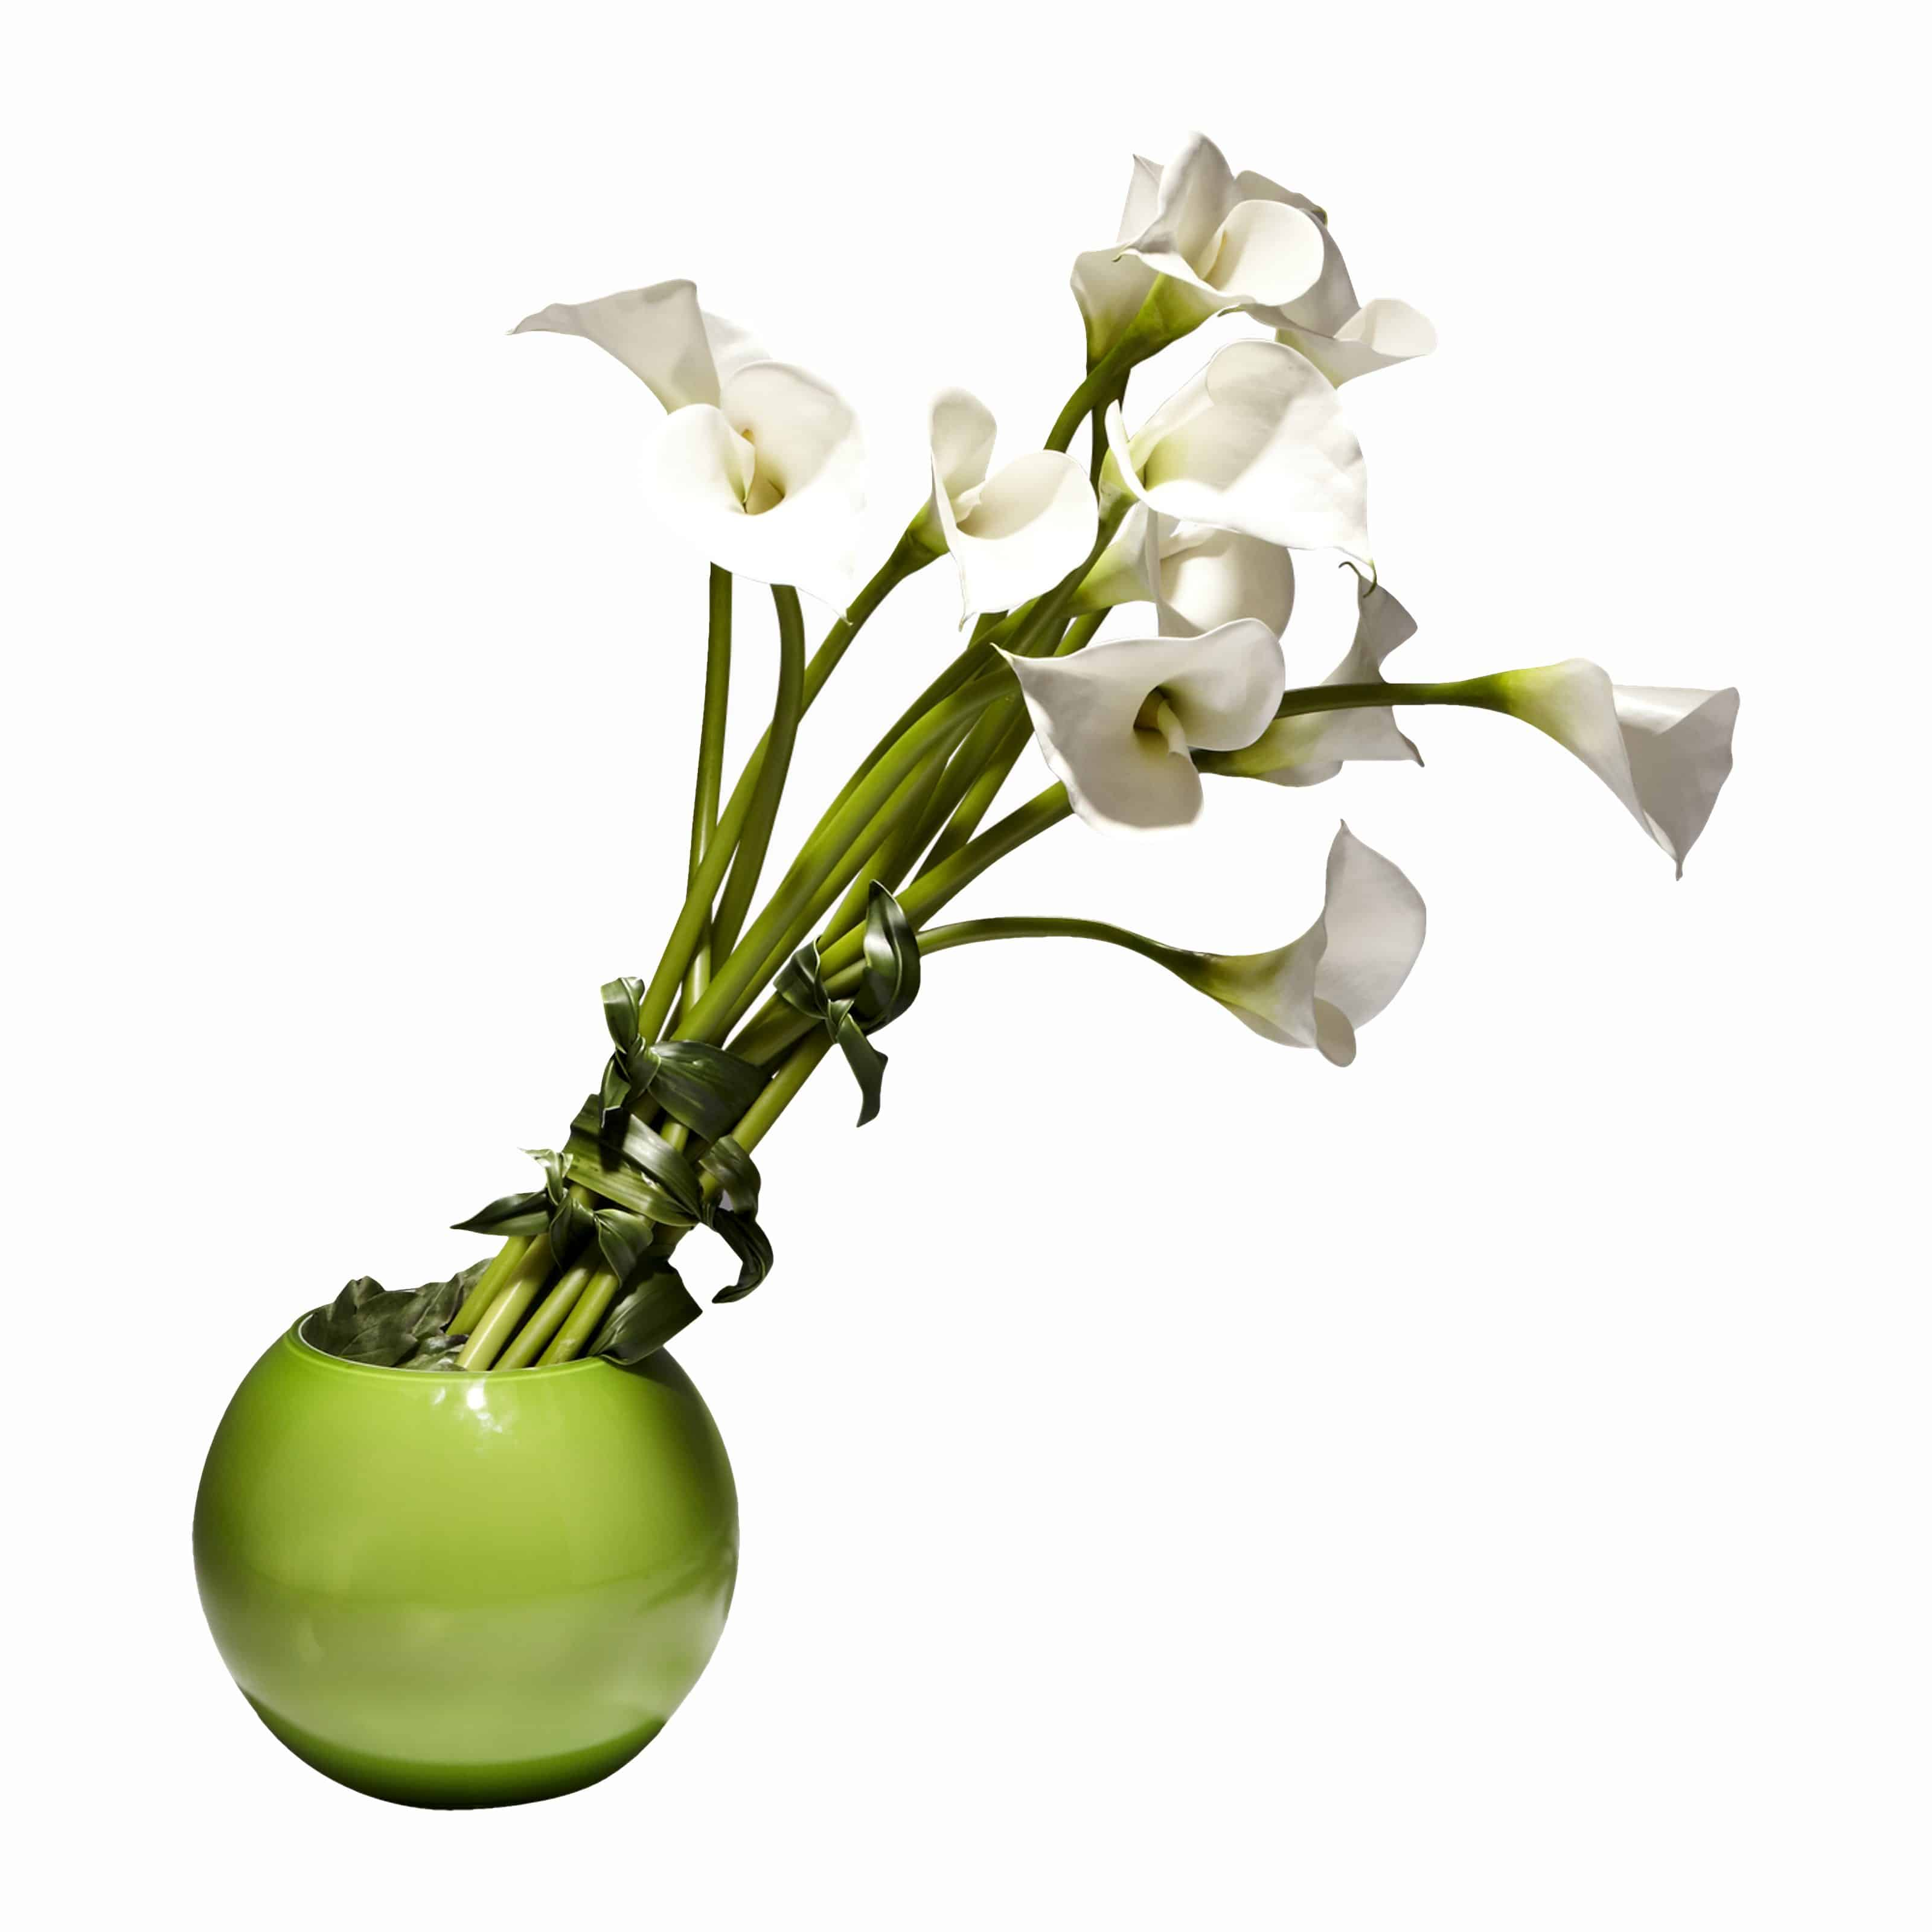 Buy our modern arrangement of fine silk lily flowers in a vibrant green bowl vase. Brighten everyone's day with this stunning faux flower arrangement.